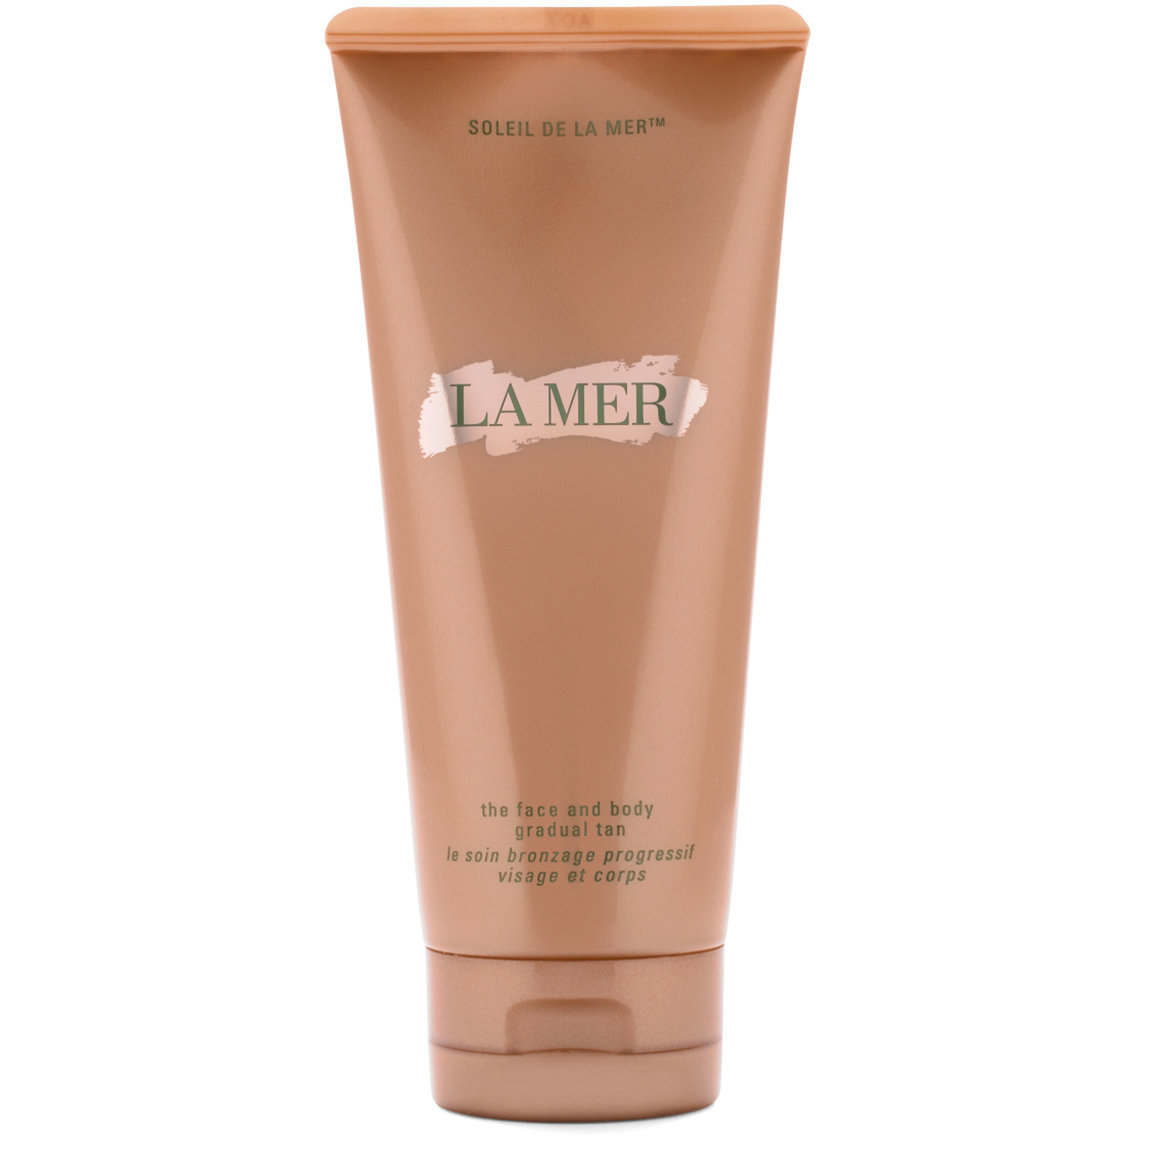 La Mer The Face & Body Gradual Tan product swatch.